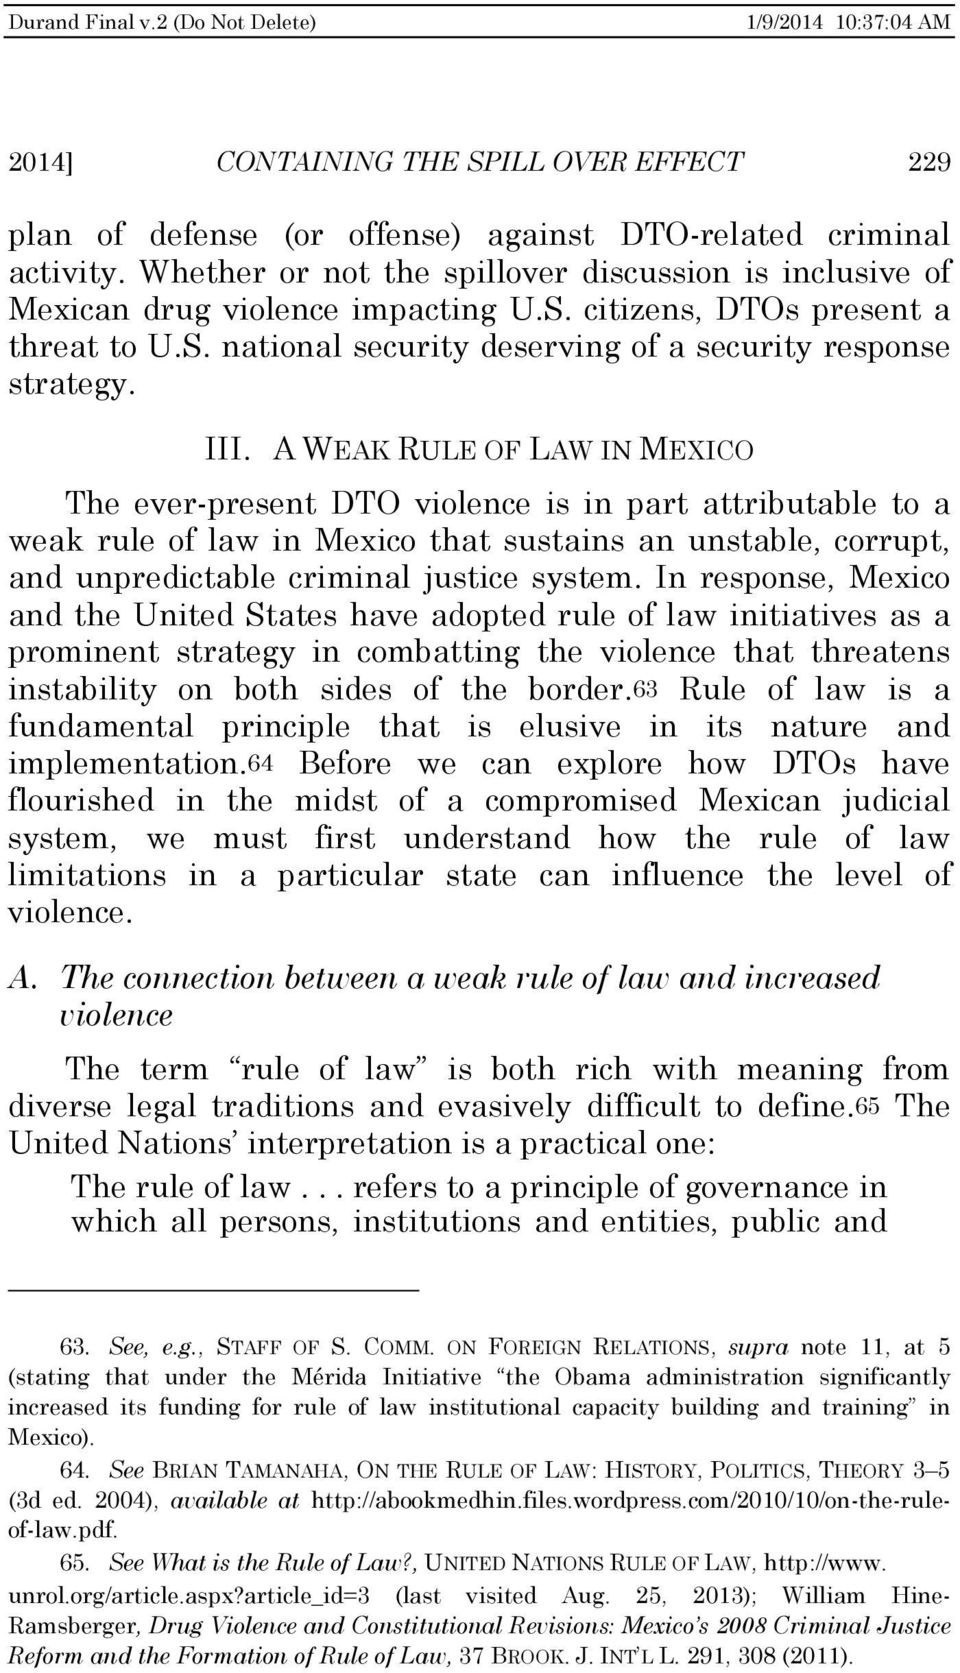 A WEAK RULE OF LAW IN MEXICO The ever-present DTO violence is in part attributable to a weak rule of law in Mexico that sustains an unstable, corrupt, and unpredictable criminal justice system.